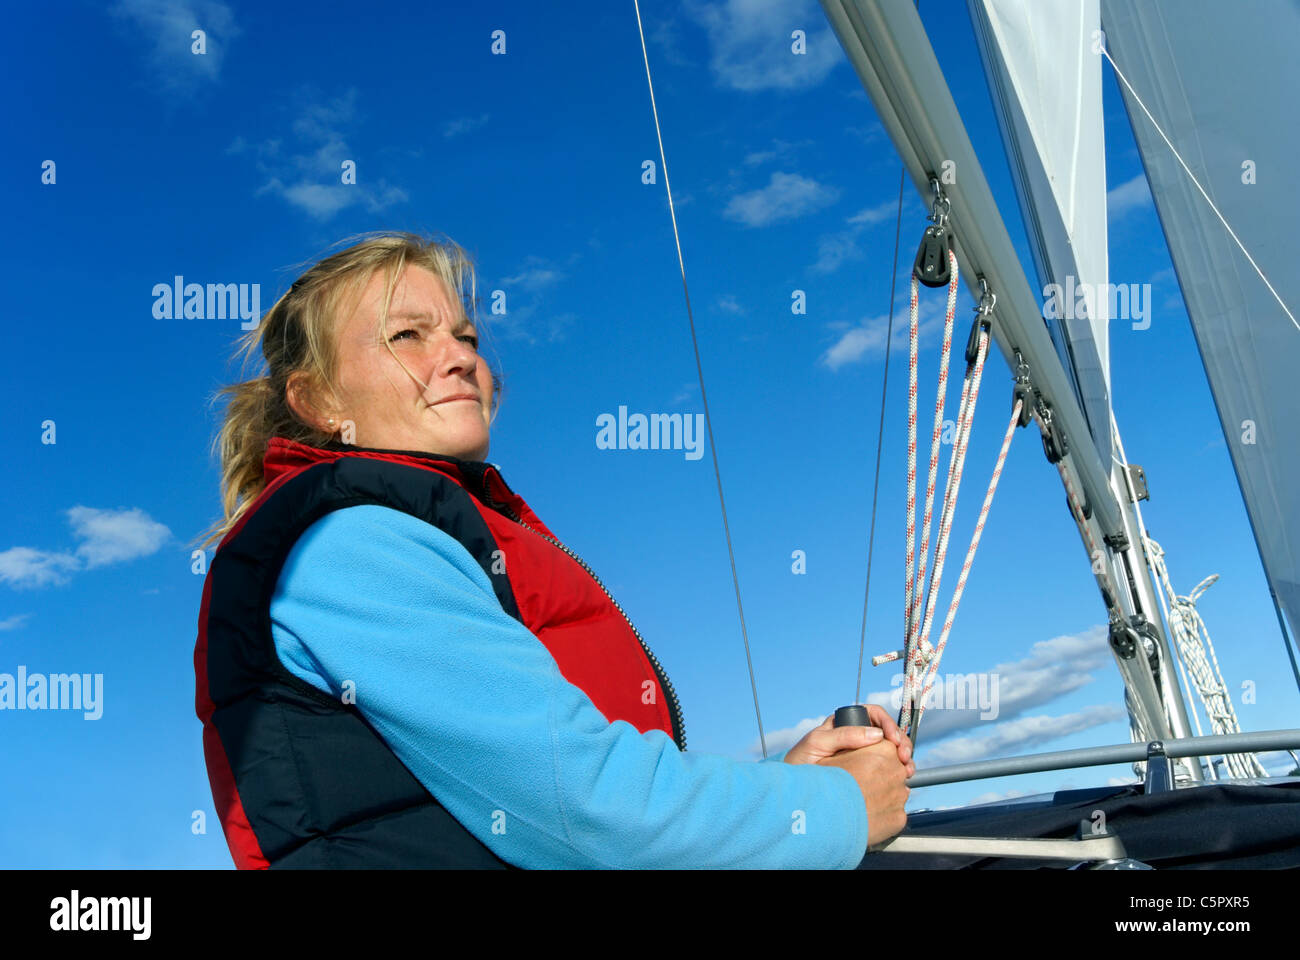 blond-woman-sailing-yacht-model-release-